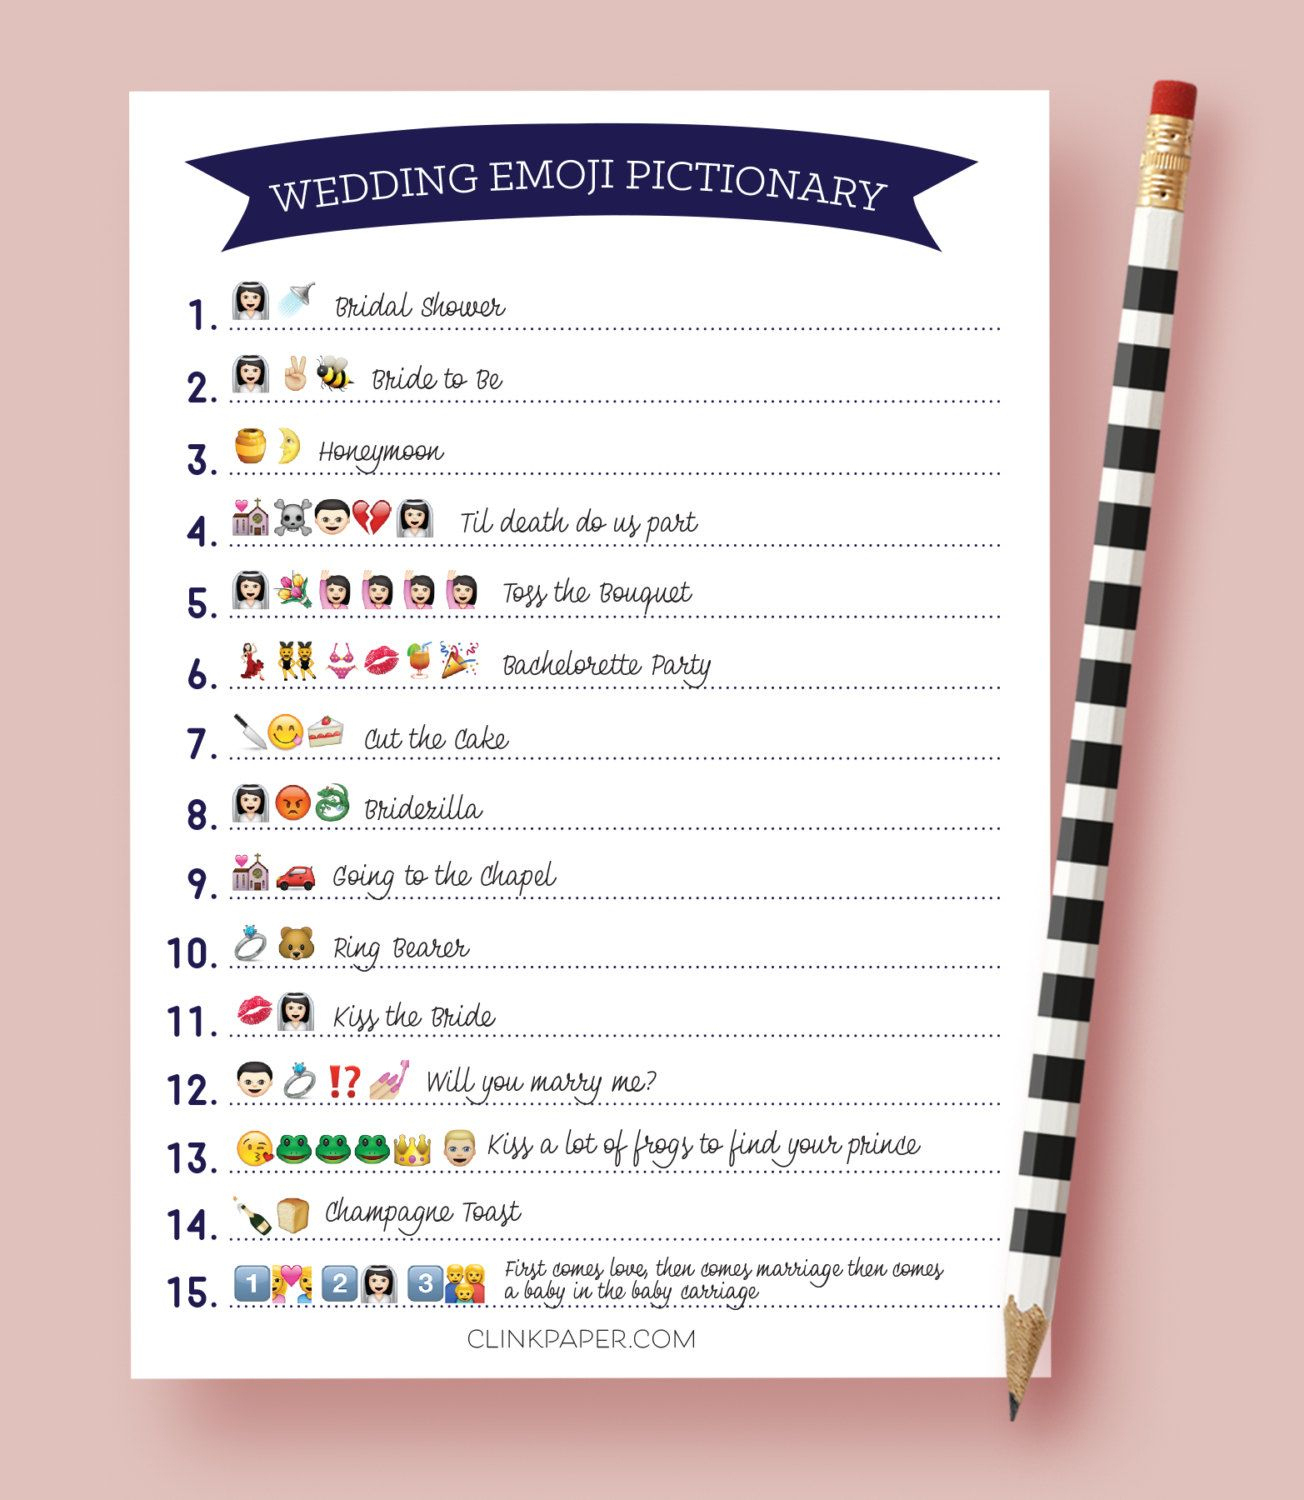 Creative Bridal Shower Games 42 | Wedding Things To Keep In 2019 - Wedding Emoji Pictionary Free Printable